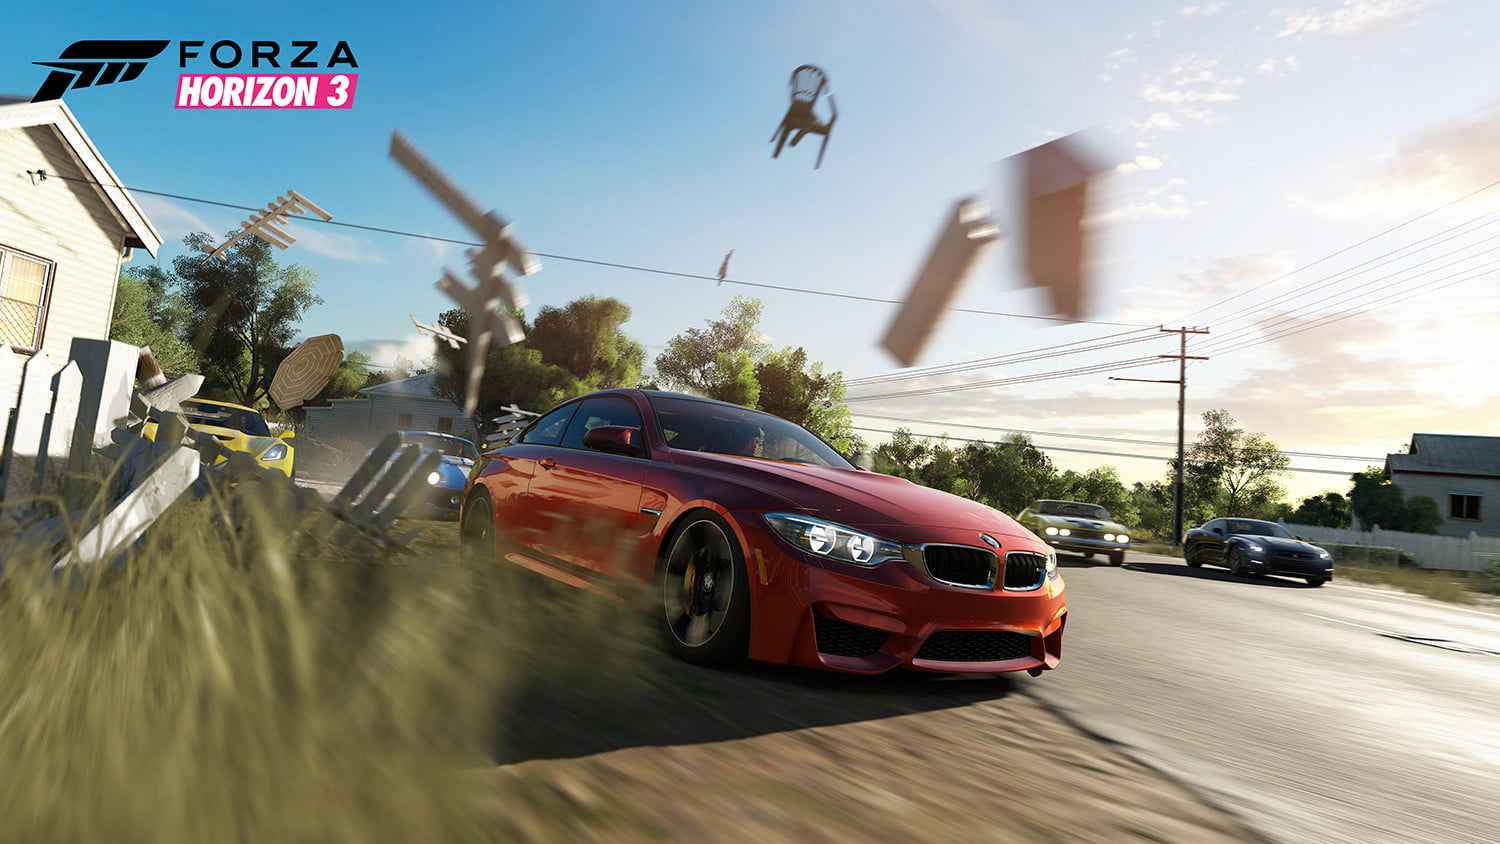 Forza Horizon 3 shows off new four-player co-op gameplay